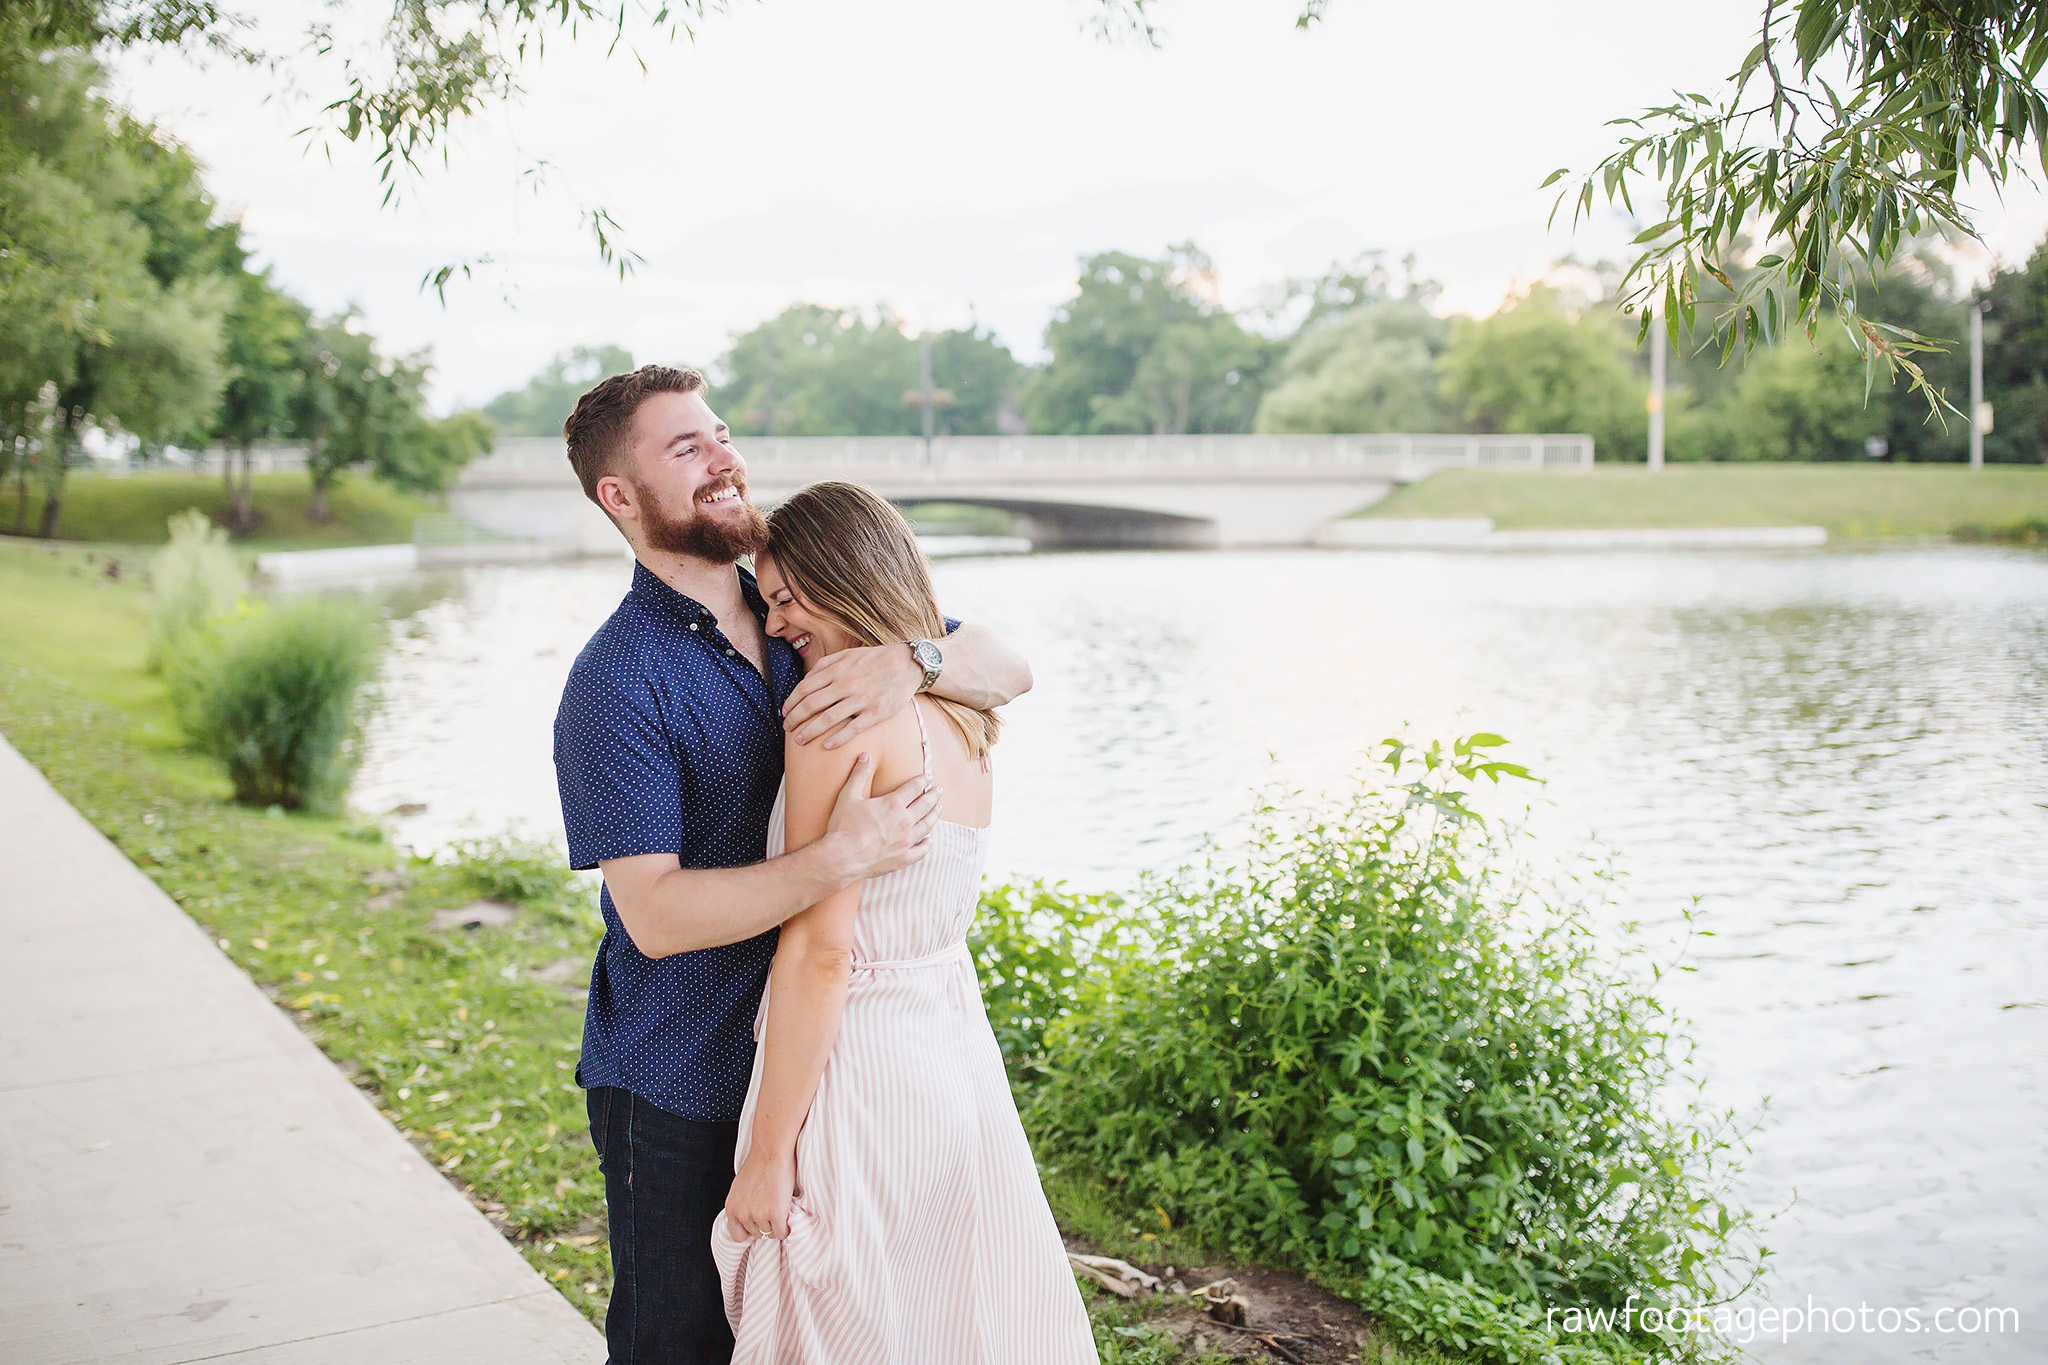 london_ontario_wedding_photographer-engagement_session-best_of_2018-raw_footage_photography046_1.jpg